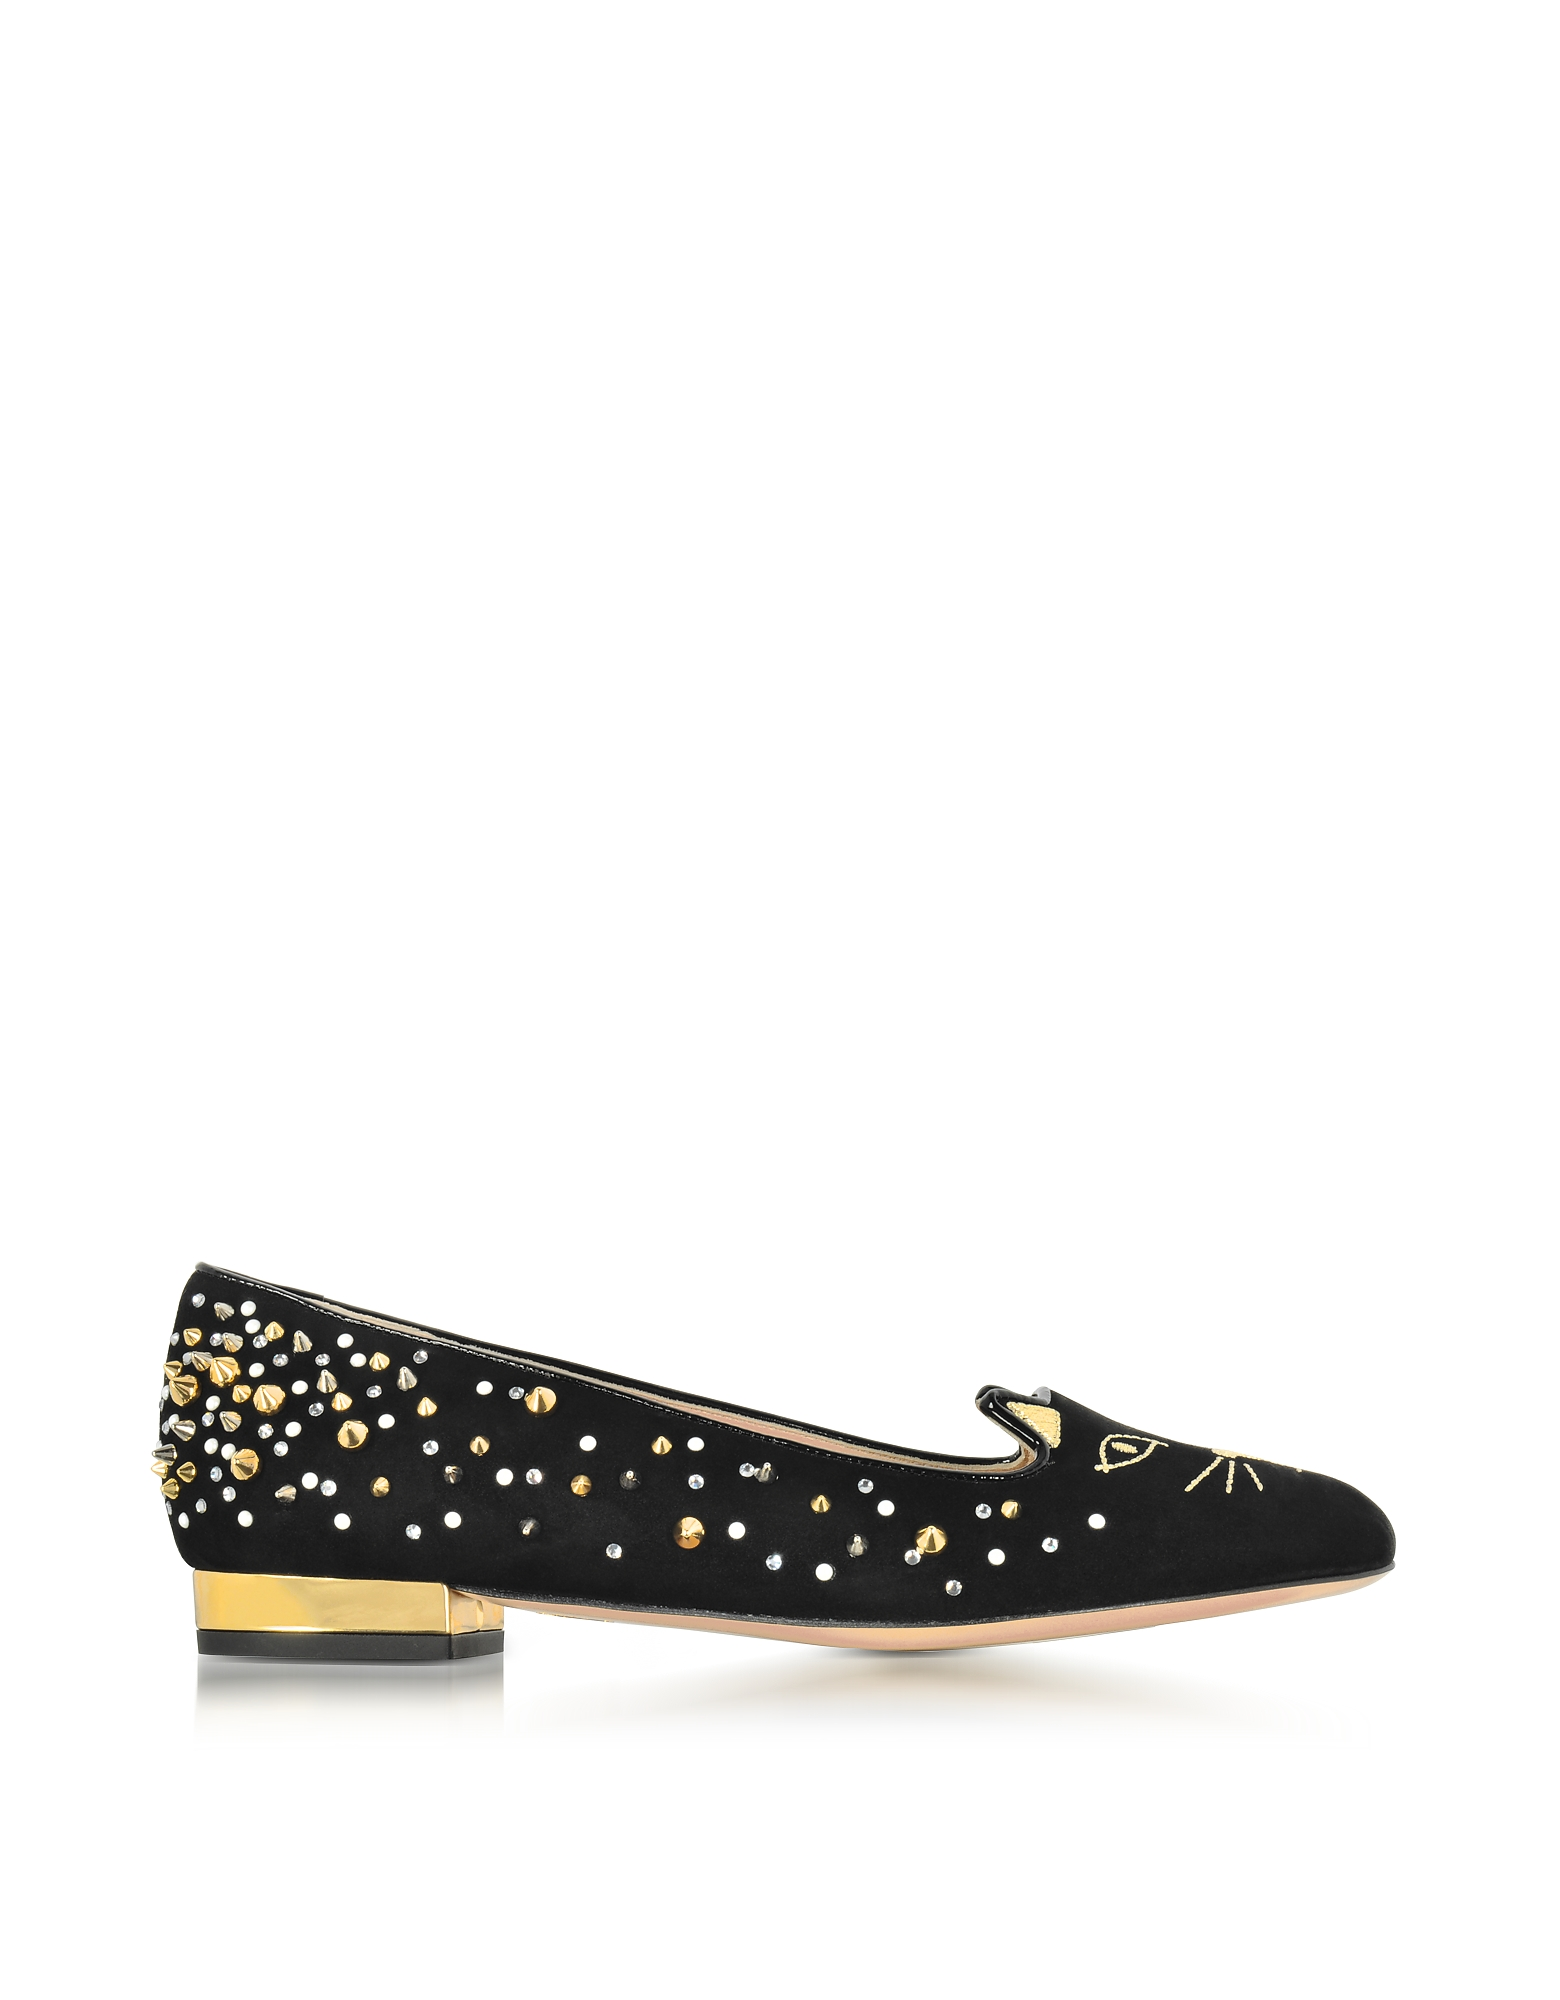 Charlotte Olympia Shoes, Black Suede Studded Kitty Flats